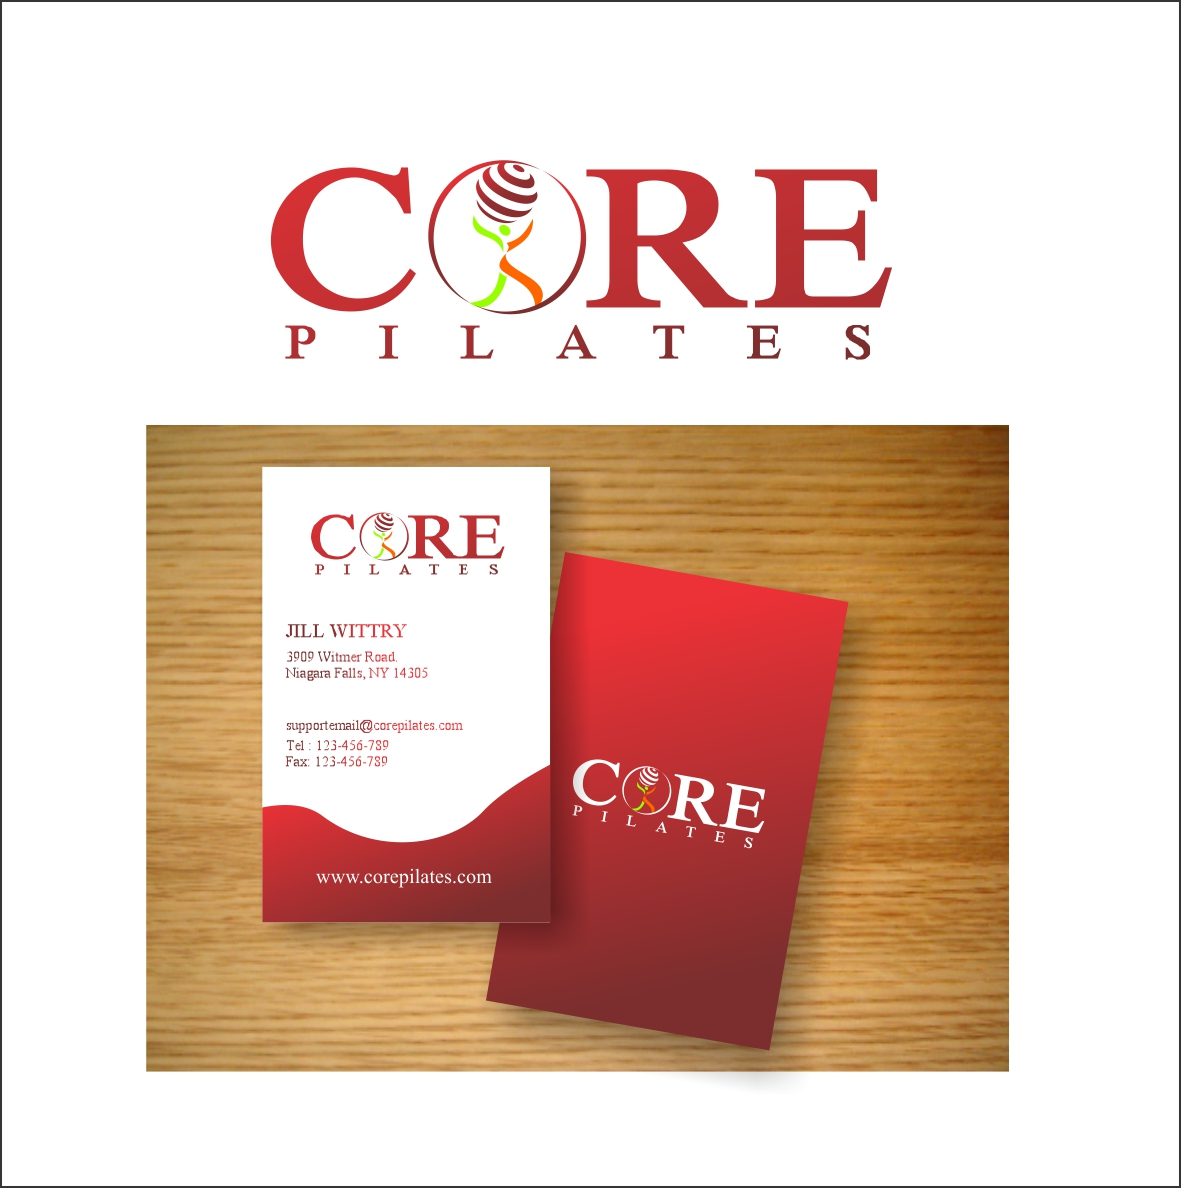 Logo Design by Hudy Wake - Entry No. 71 in the Logo Design Contest Core Pilates Logo Design.